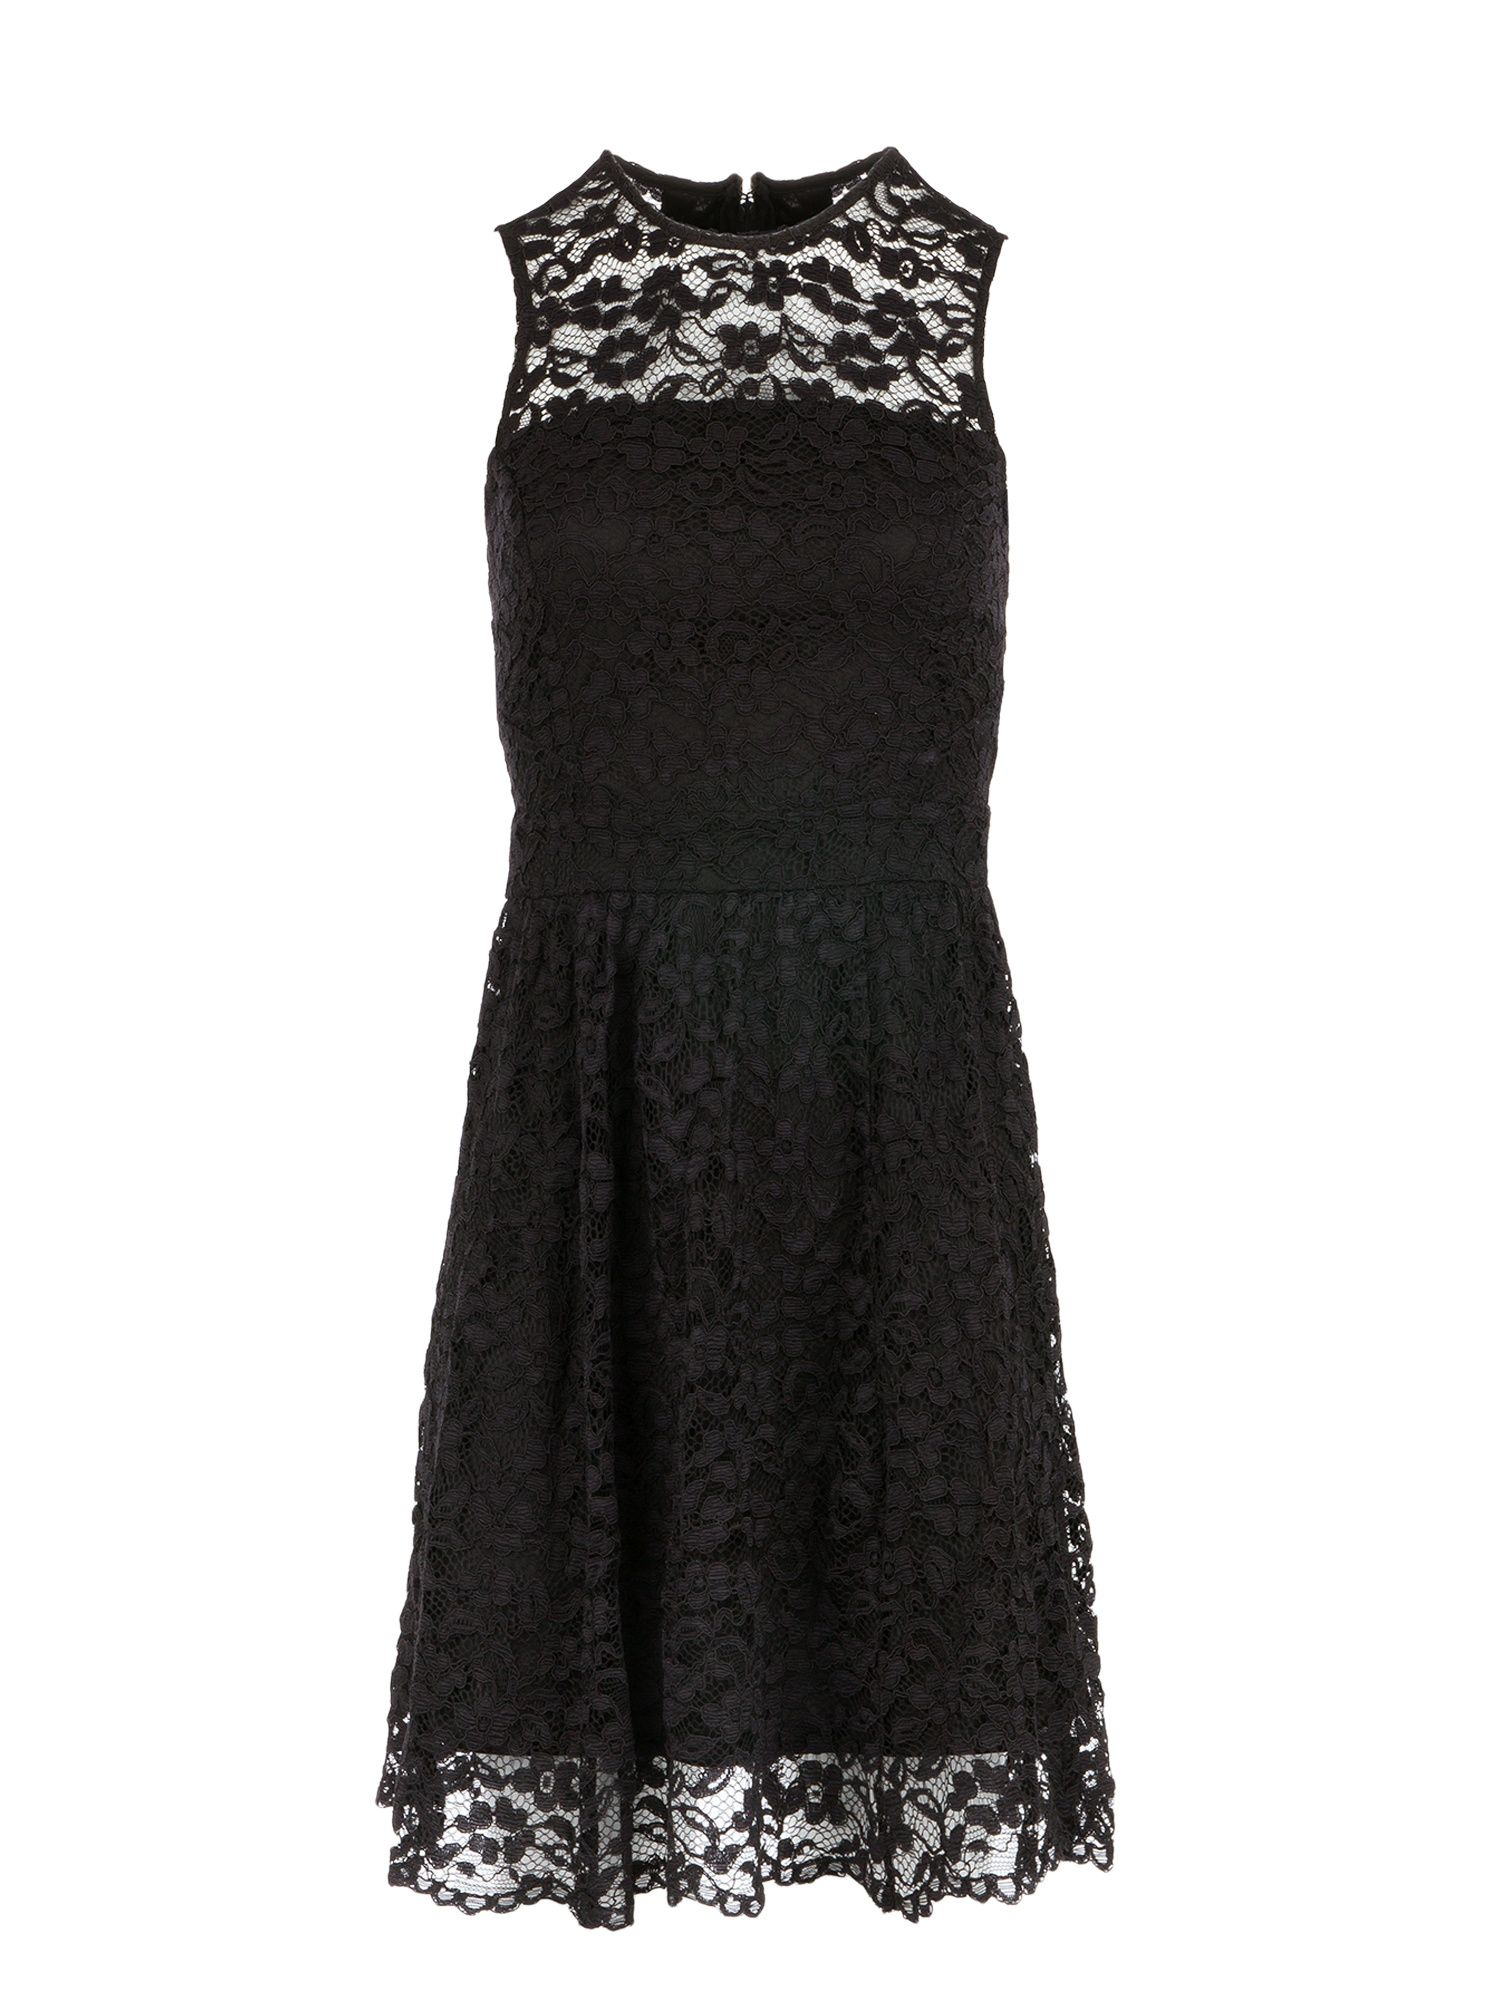 Morgan Lace Sleeveless Dress, Black